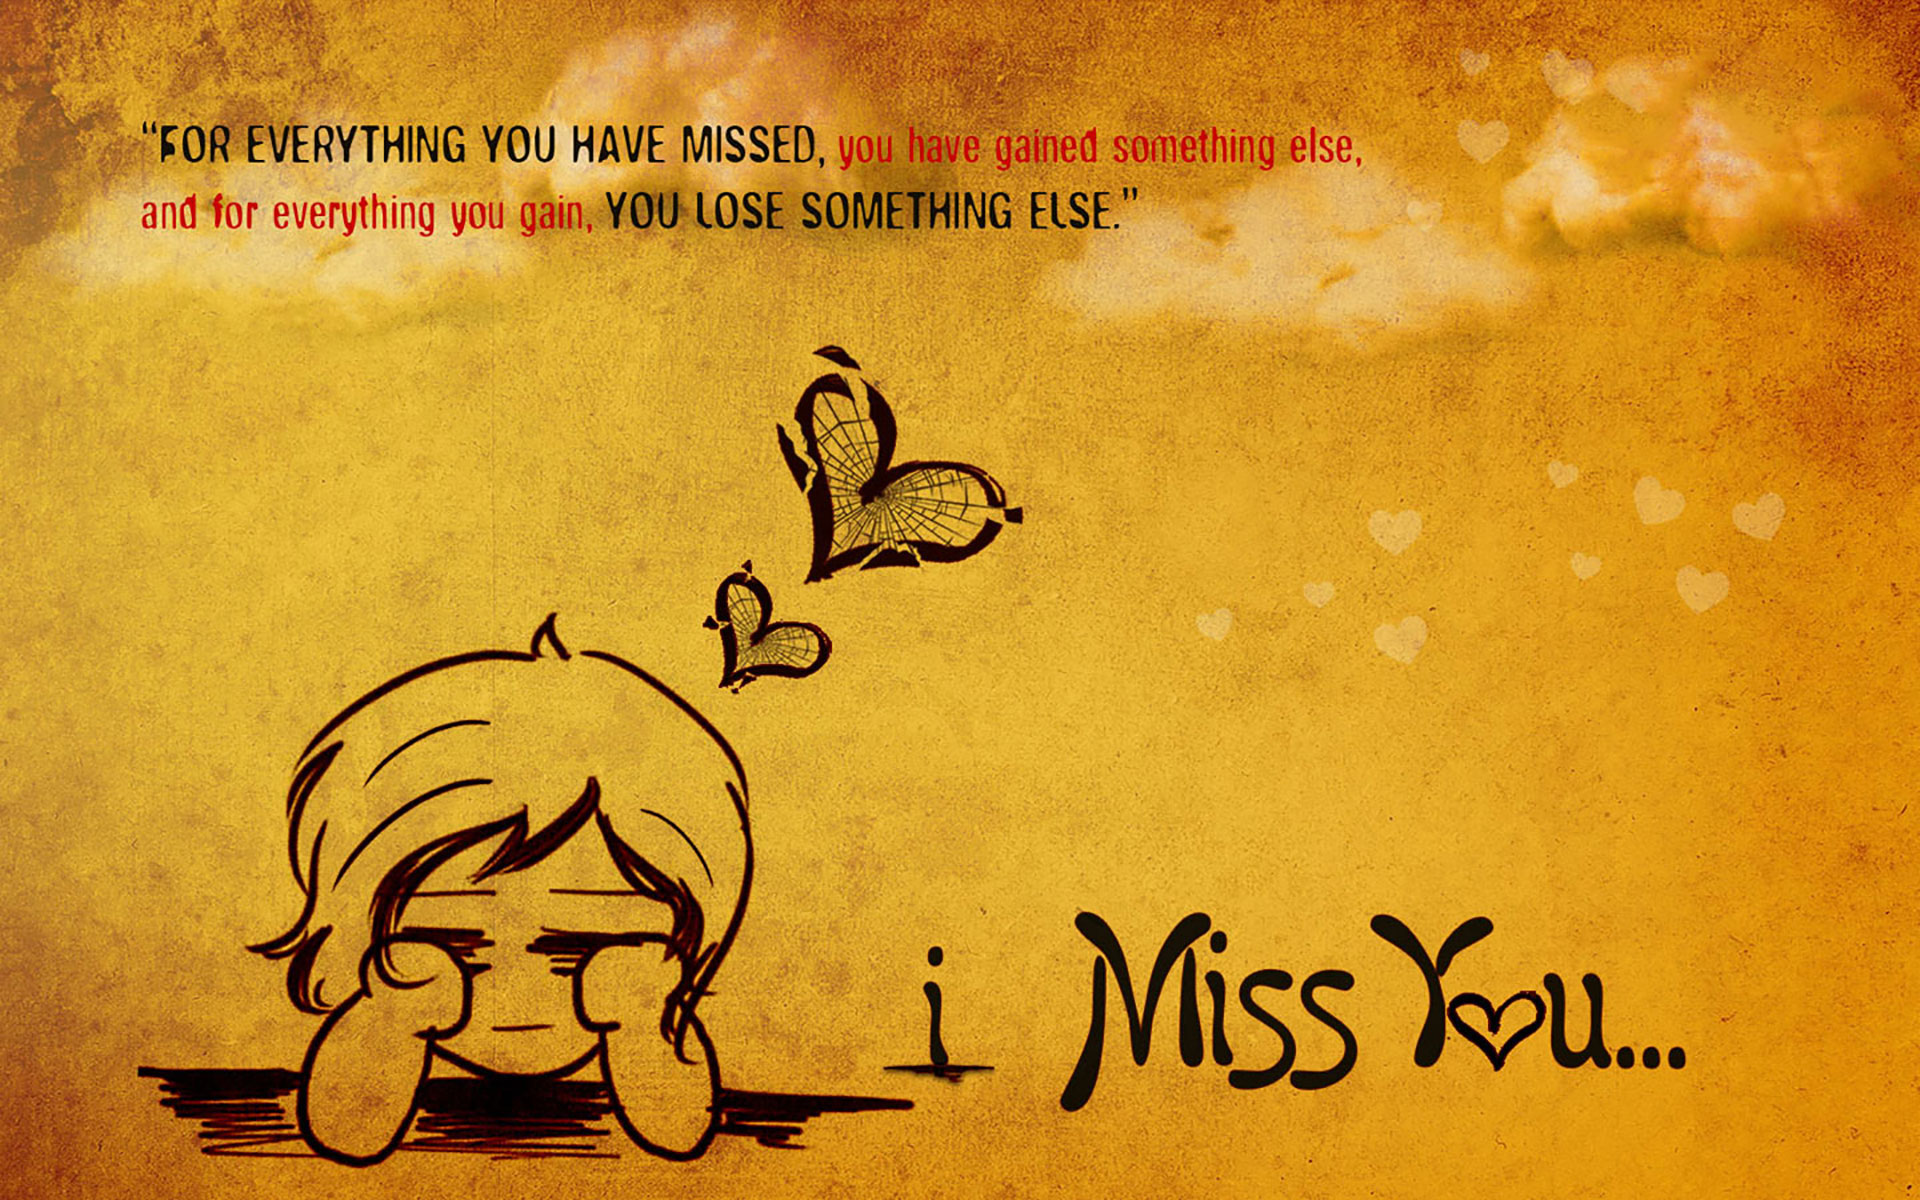 Missing U Wallpapers